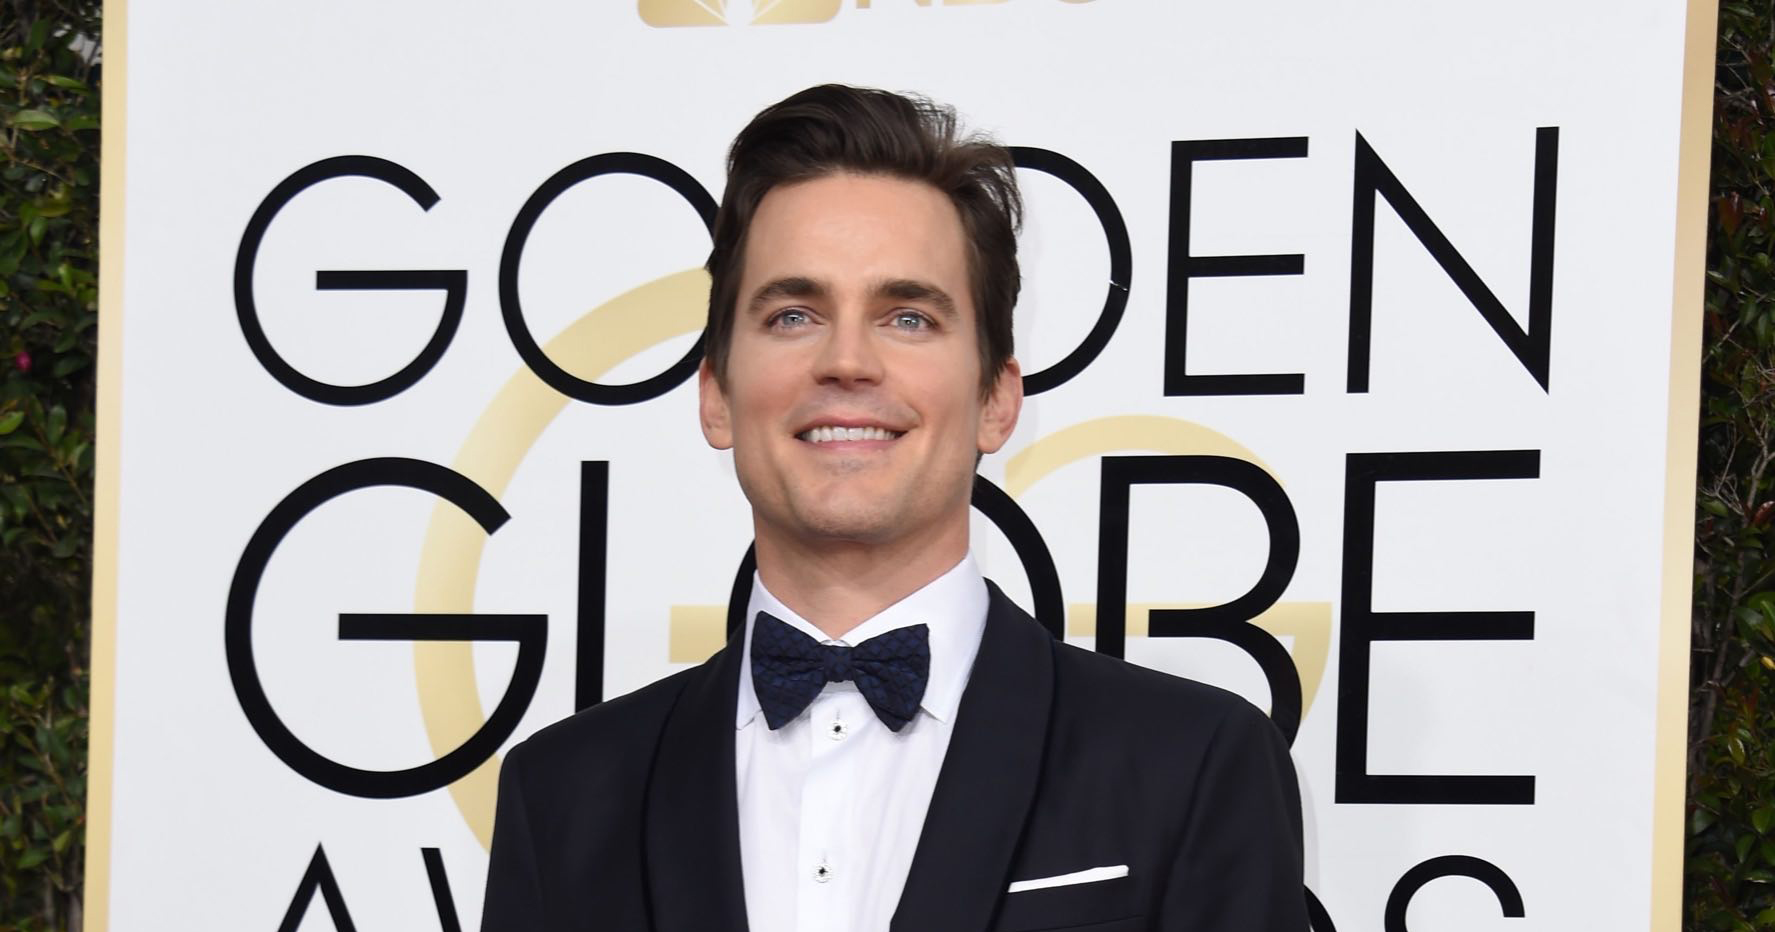 Matt attends the 74th Annual Golden Globe Awards